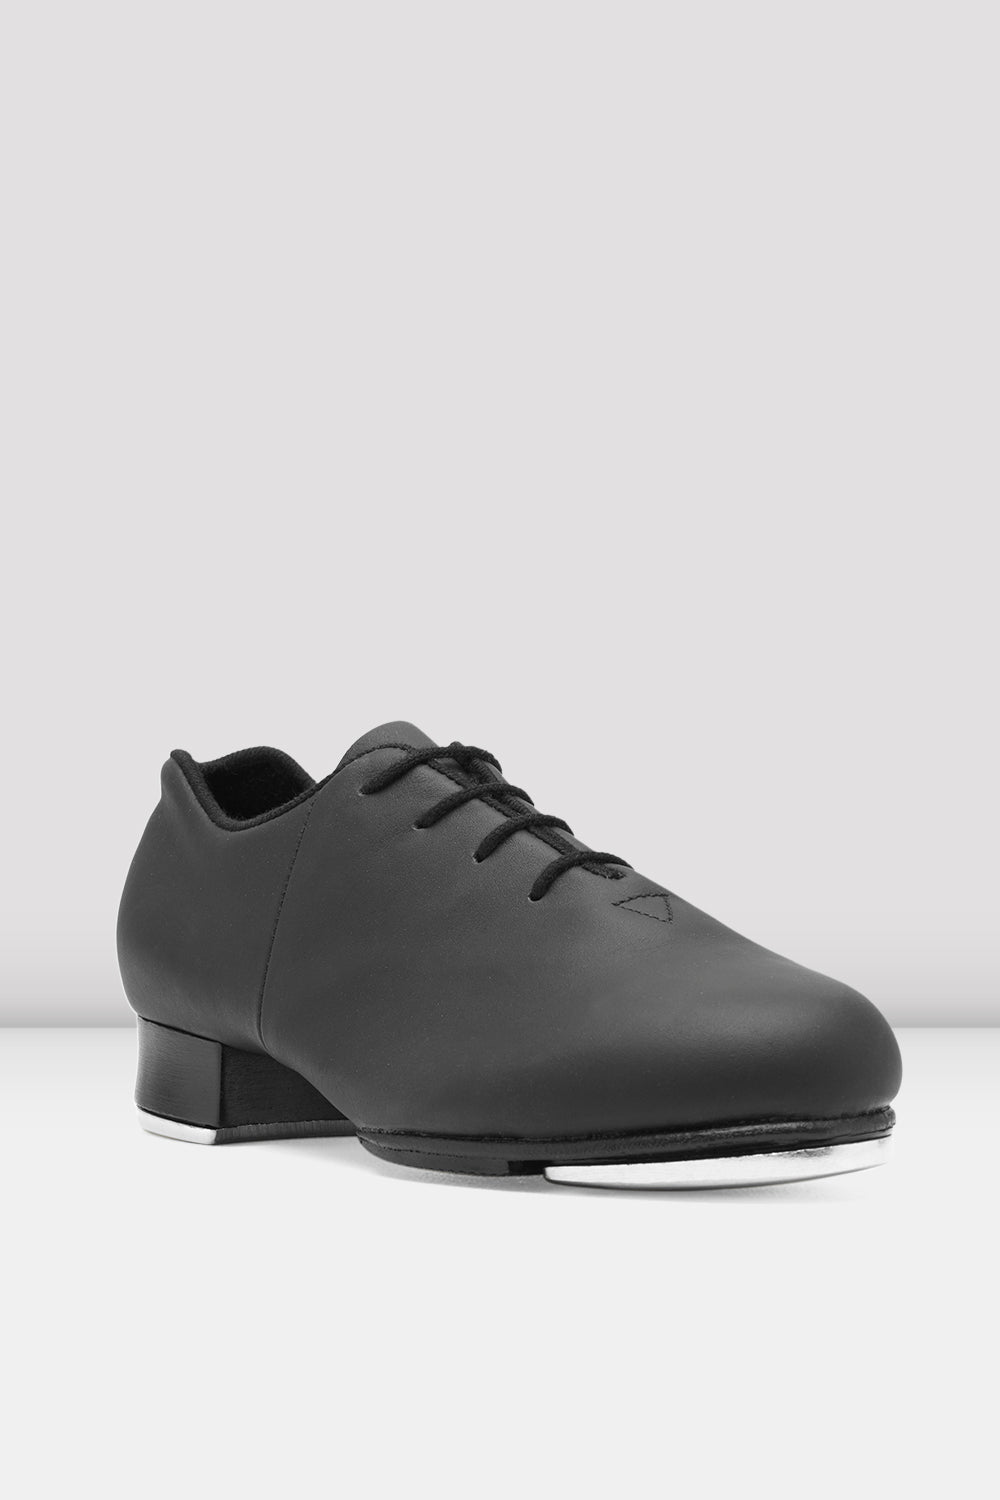 Mens Tap-Flex Leather Tap Shoes